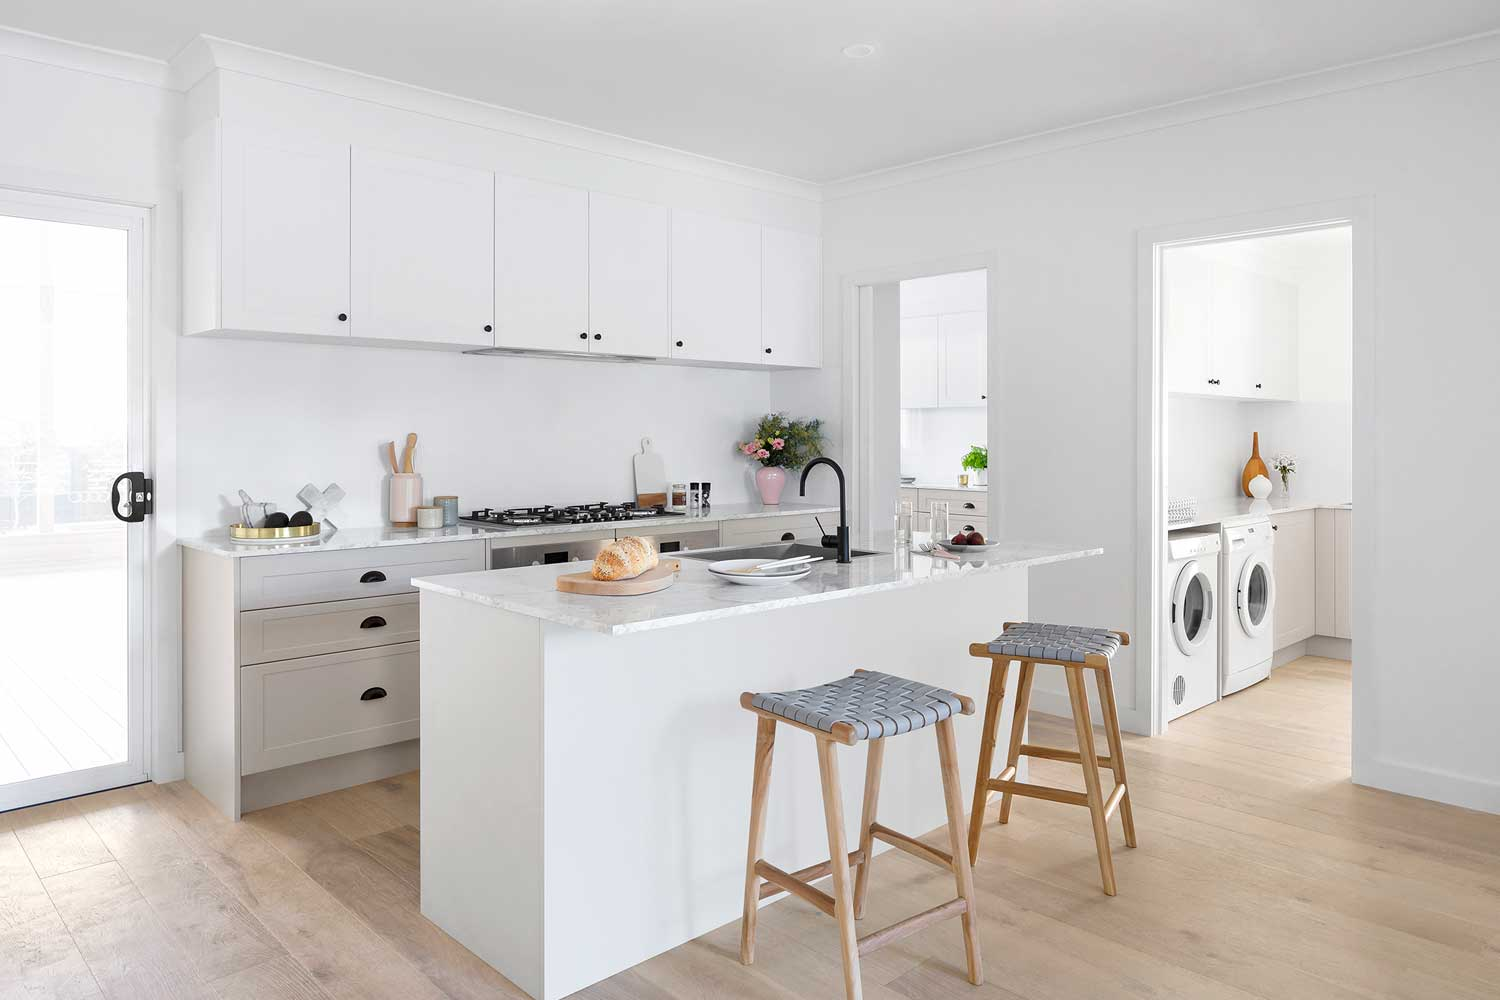 5 Things No One Knows About Installing Their Own Kitchen Home Beautiful Magazine Australia